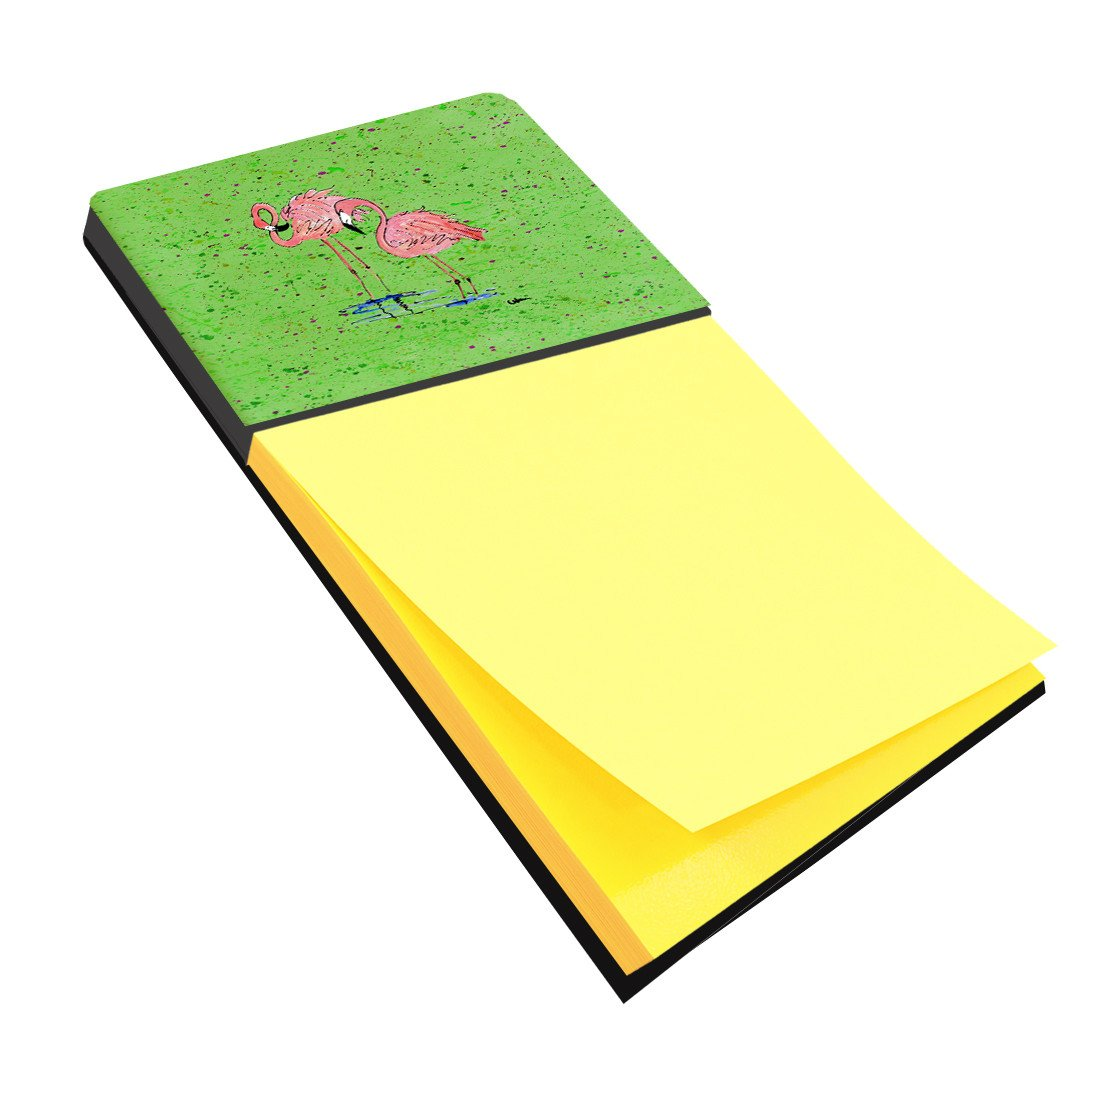 Flamingo Refiillable Sticky Note Holder or Postit Note Dispenser 8567SN by Caroline's Treasures